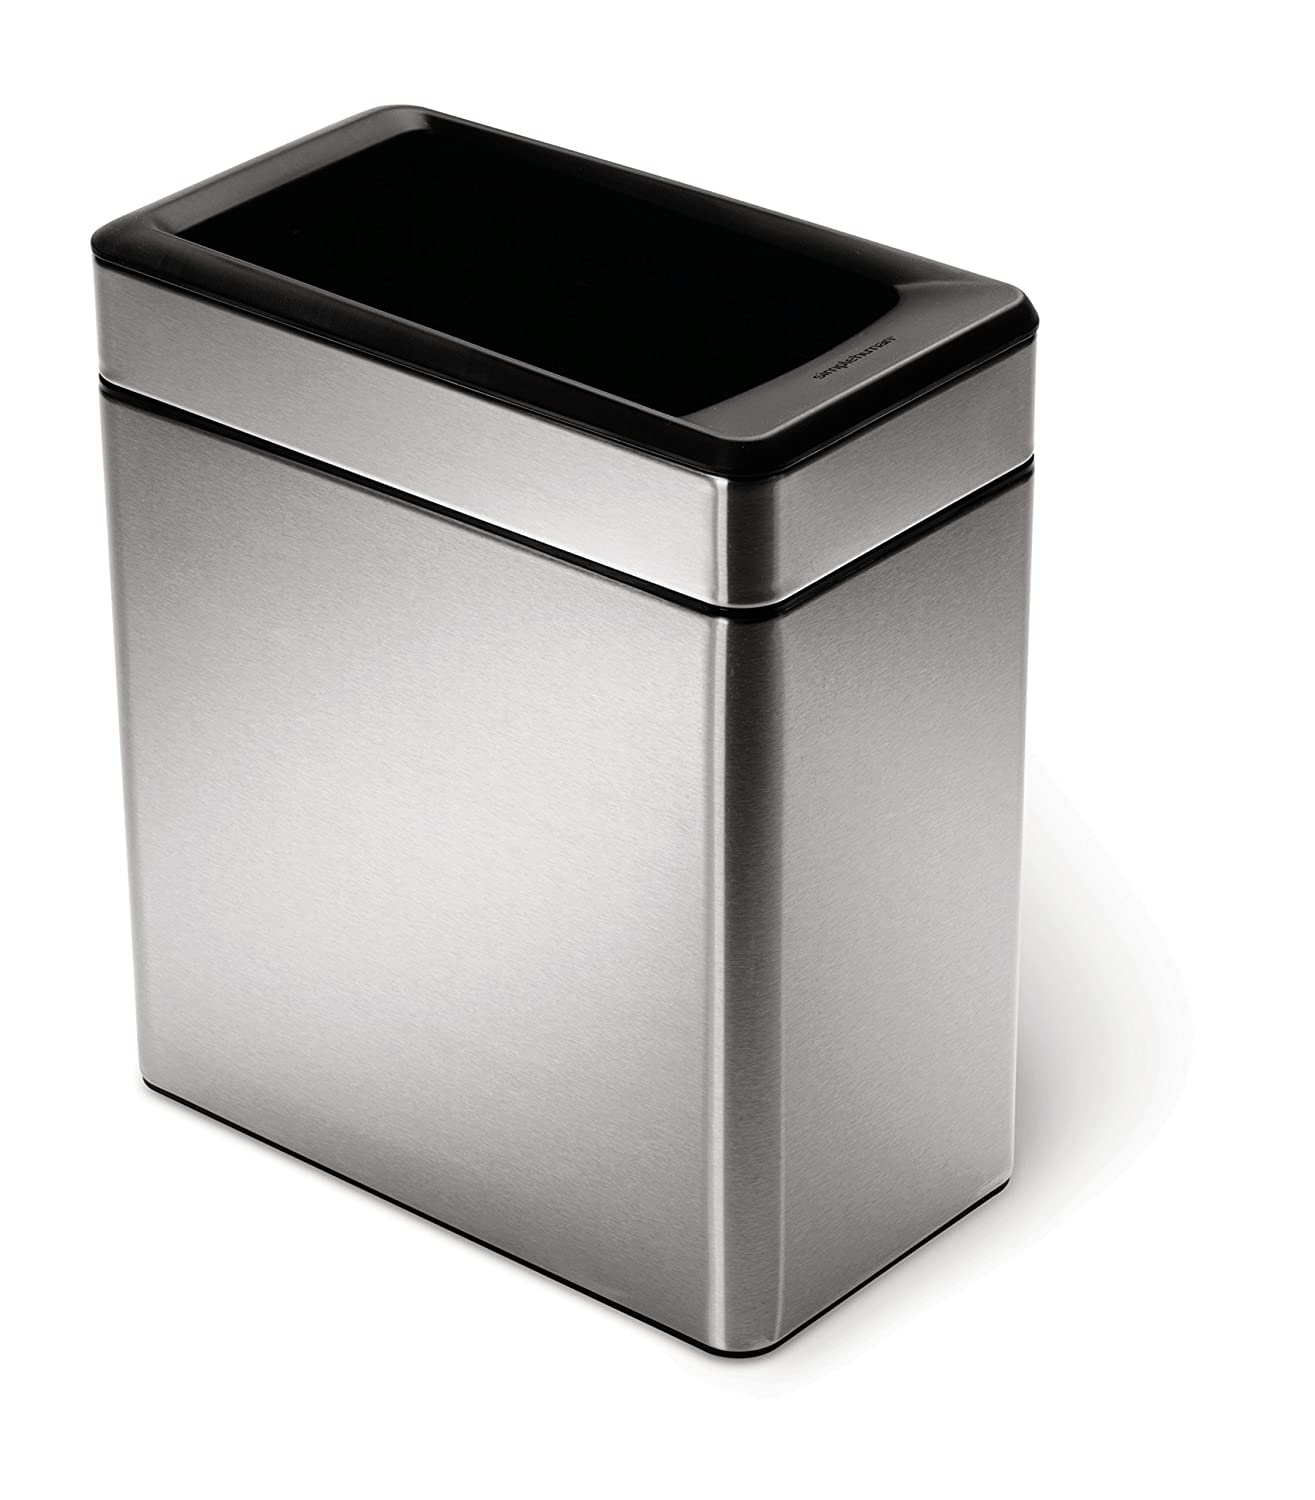 simplehuman Profile Open Trash Can, Brushed Stainless Steel, 10 L / 2.6 gallon CW1225